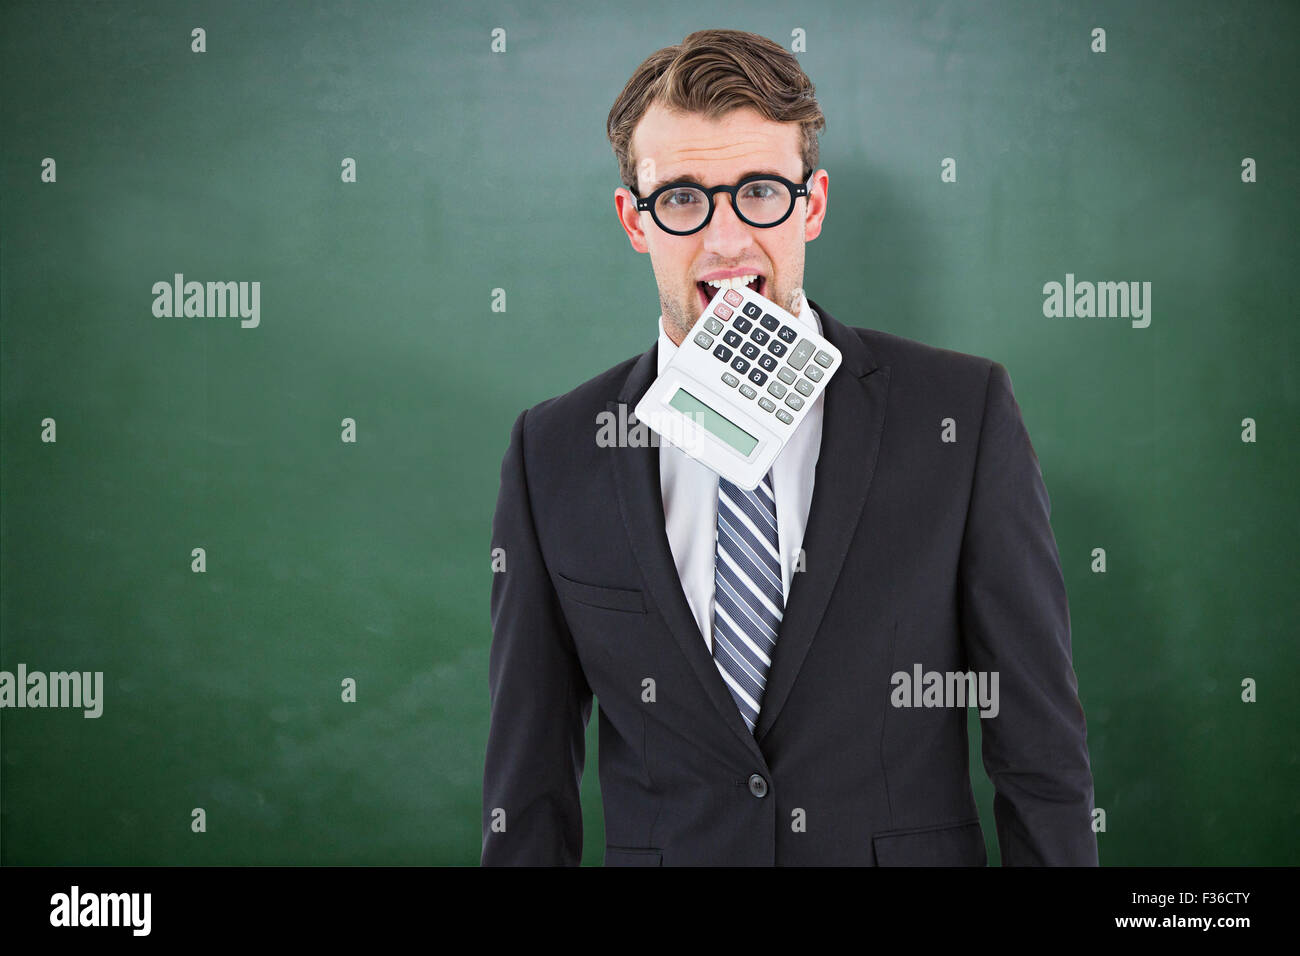 Composite image of geeky businessman biting calculator - Stock Image